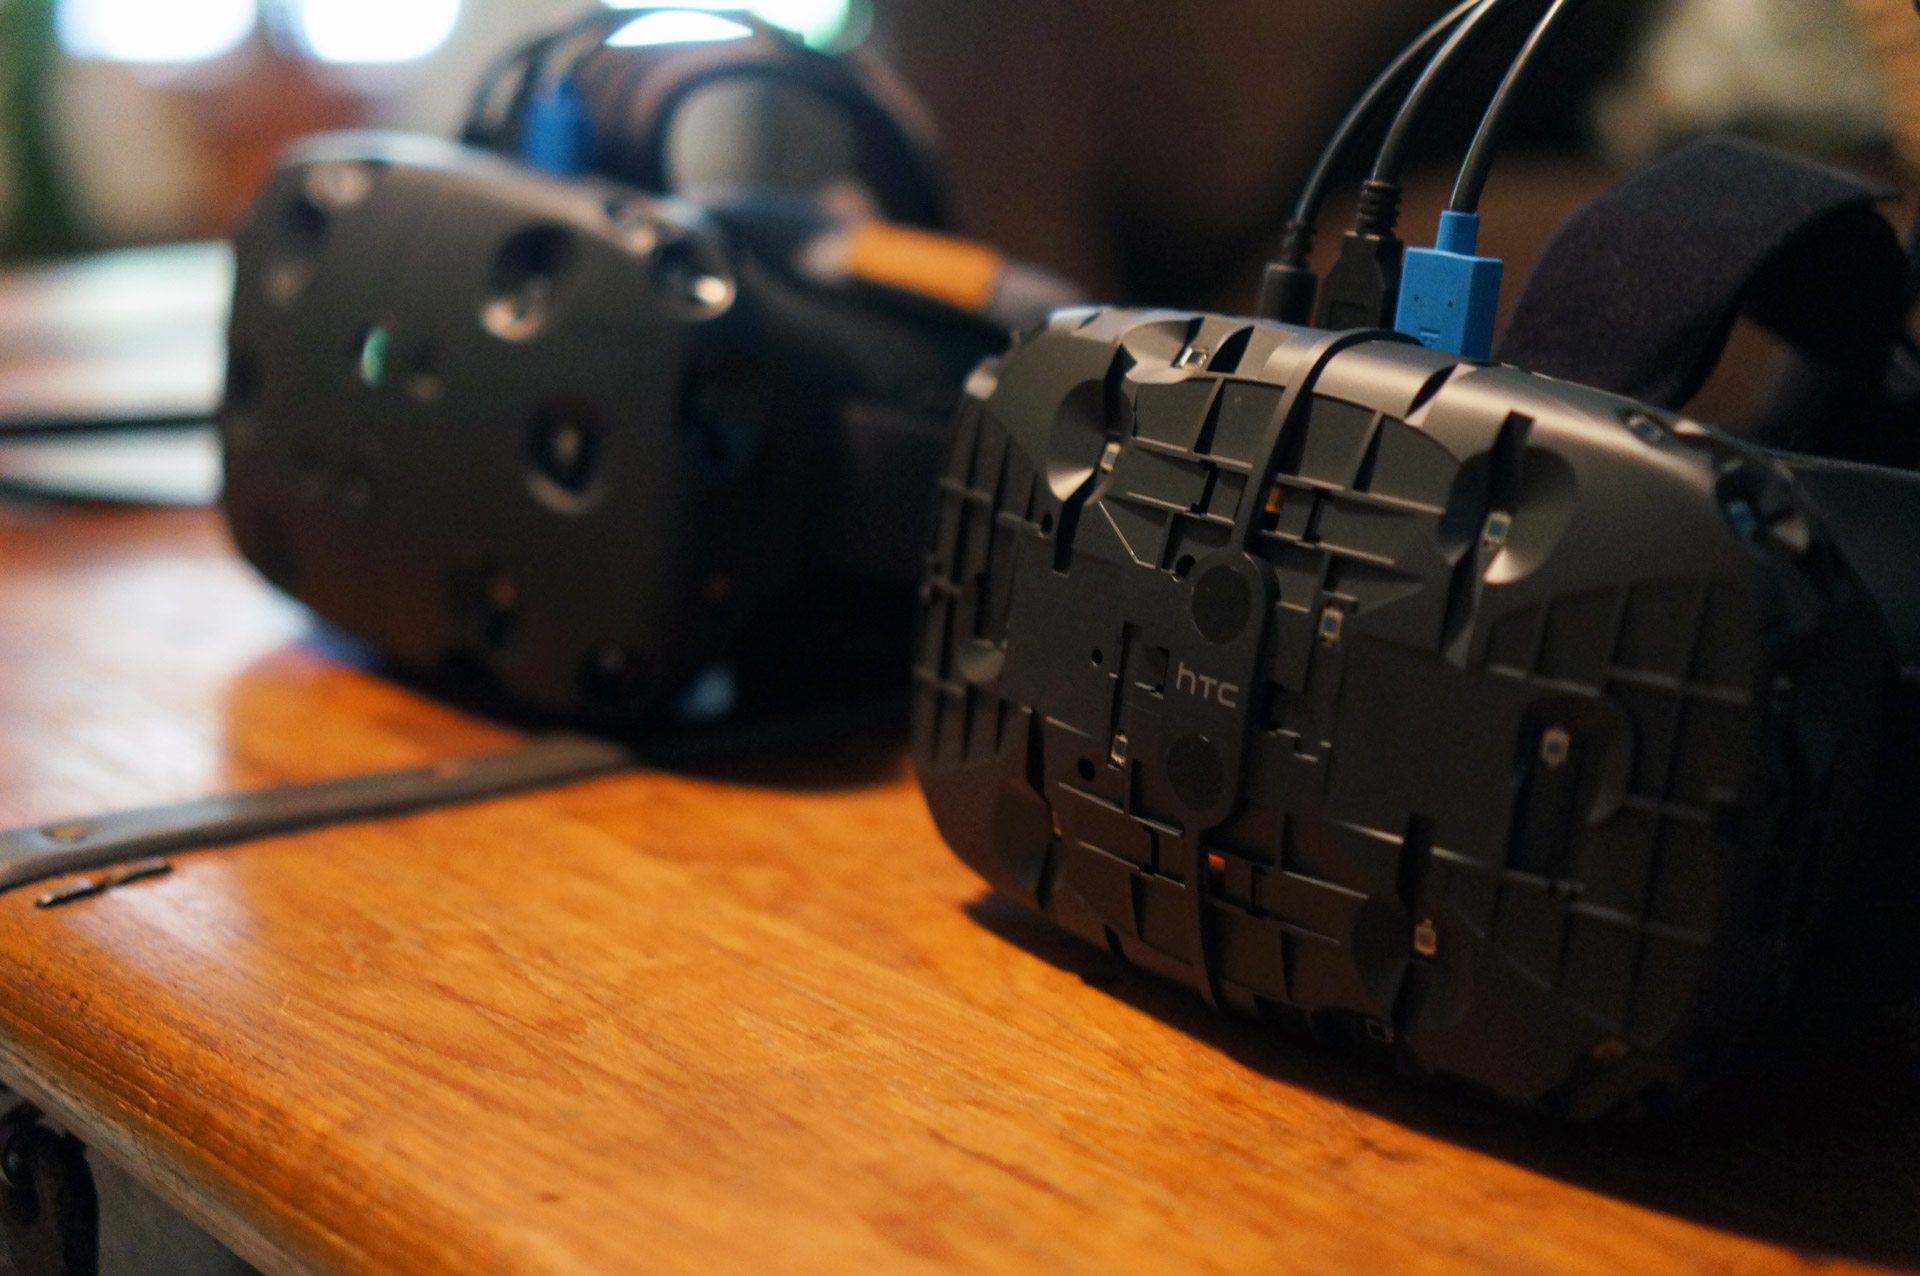 The HTC Vive Developer Edition (right) next to the older dev kit prototype